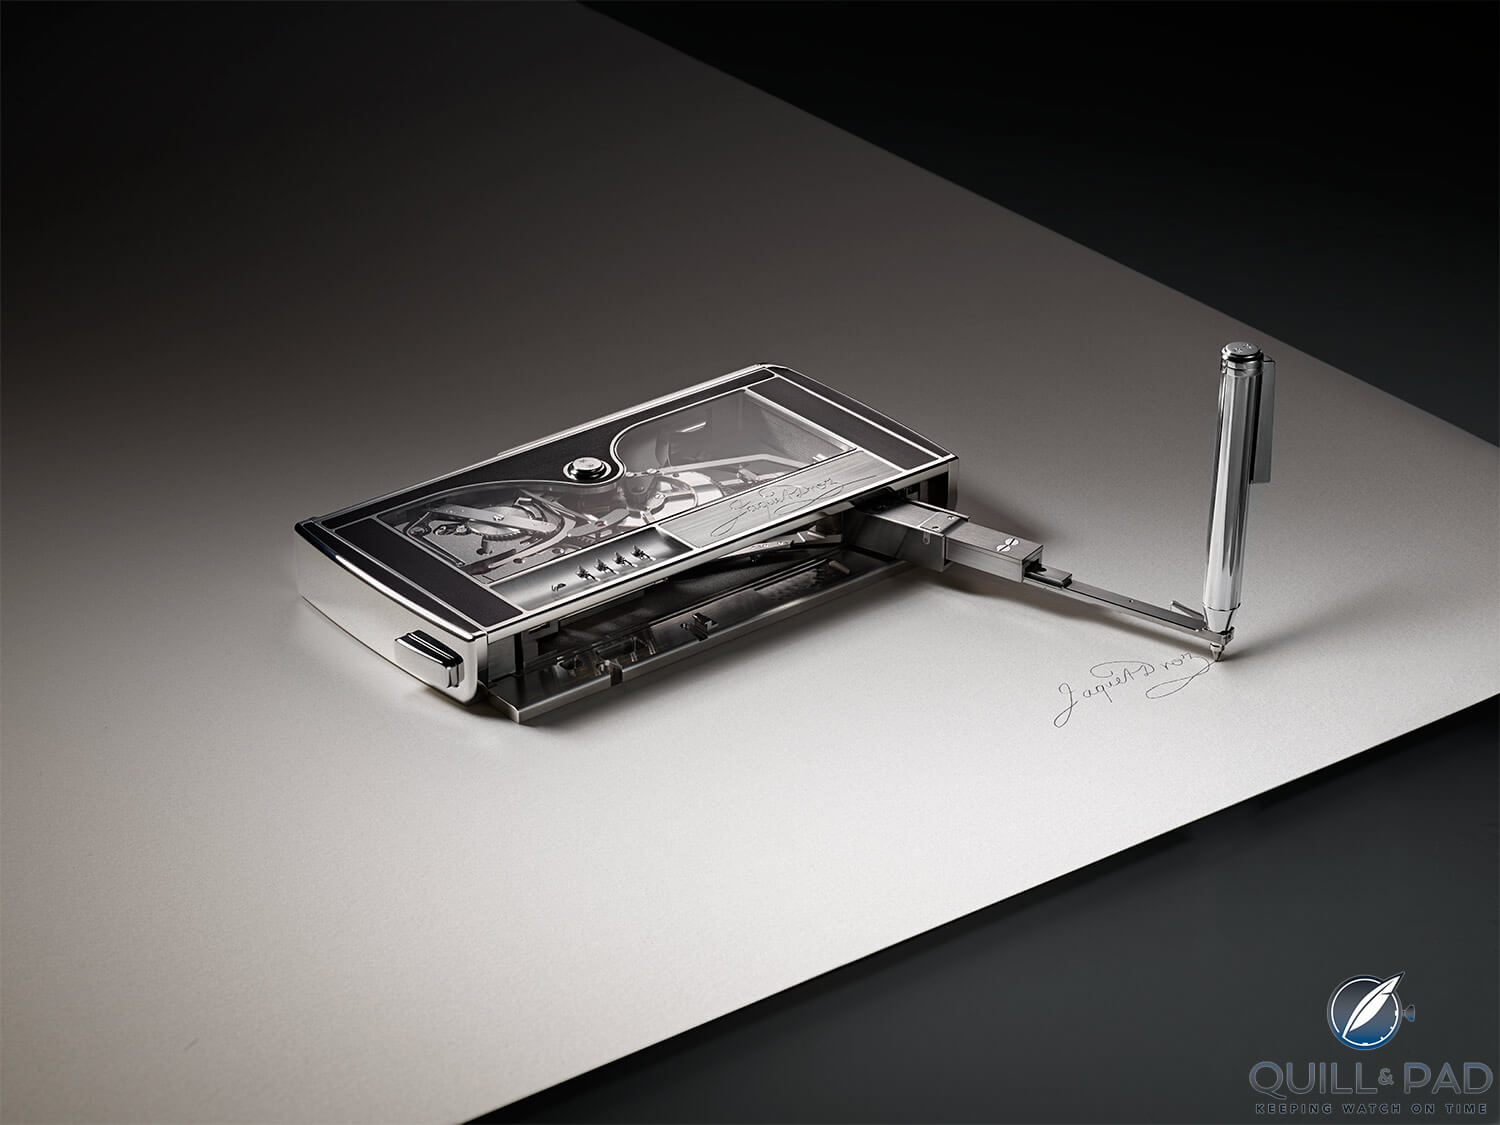 Jaquet Droz Signing Machine